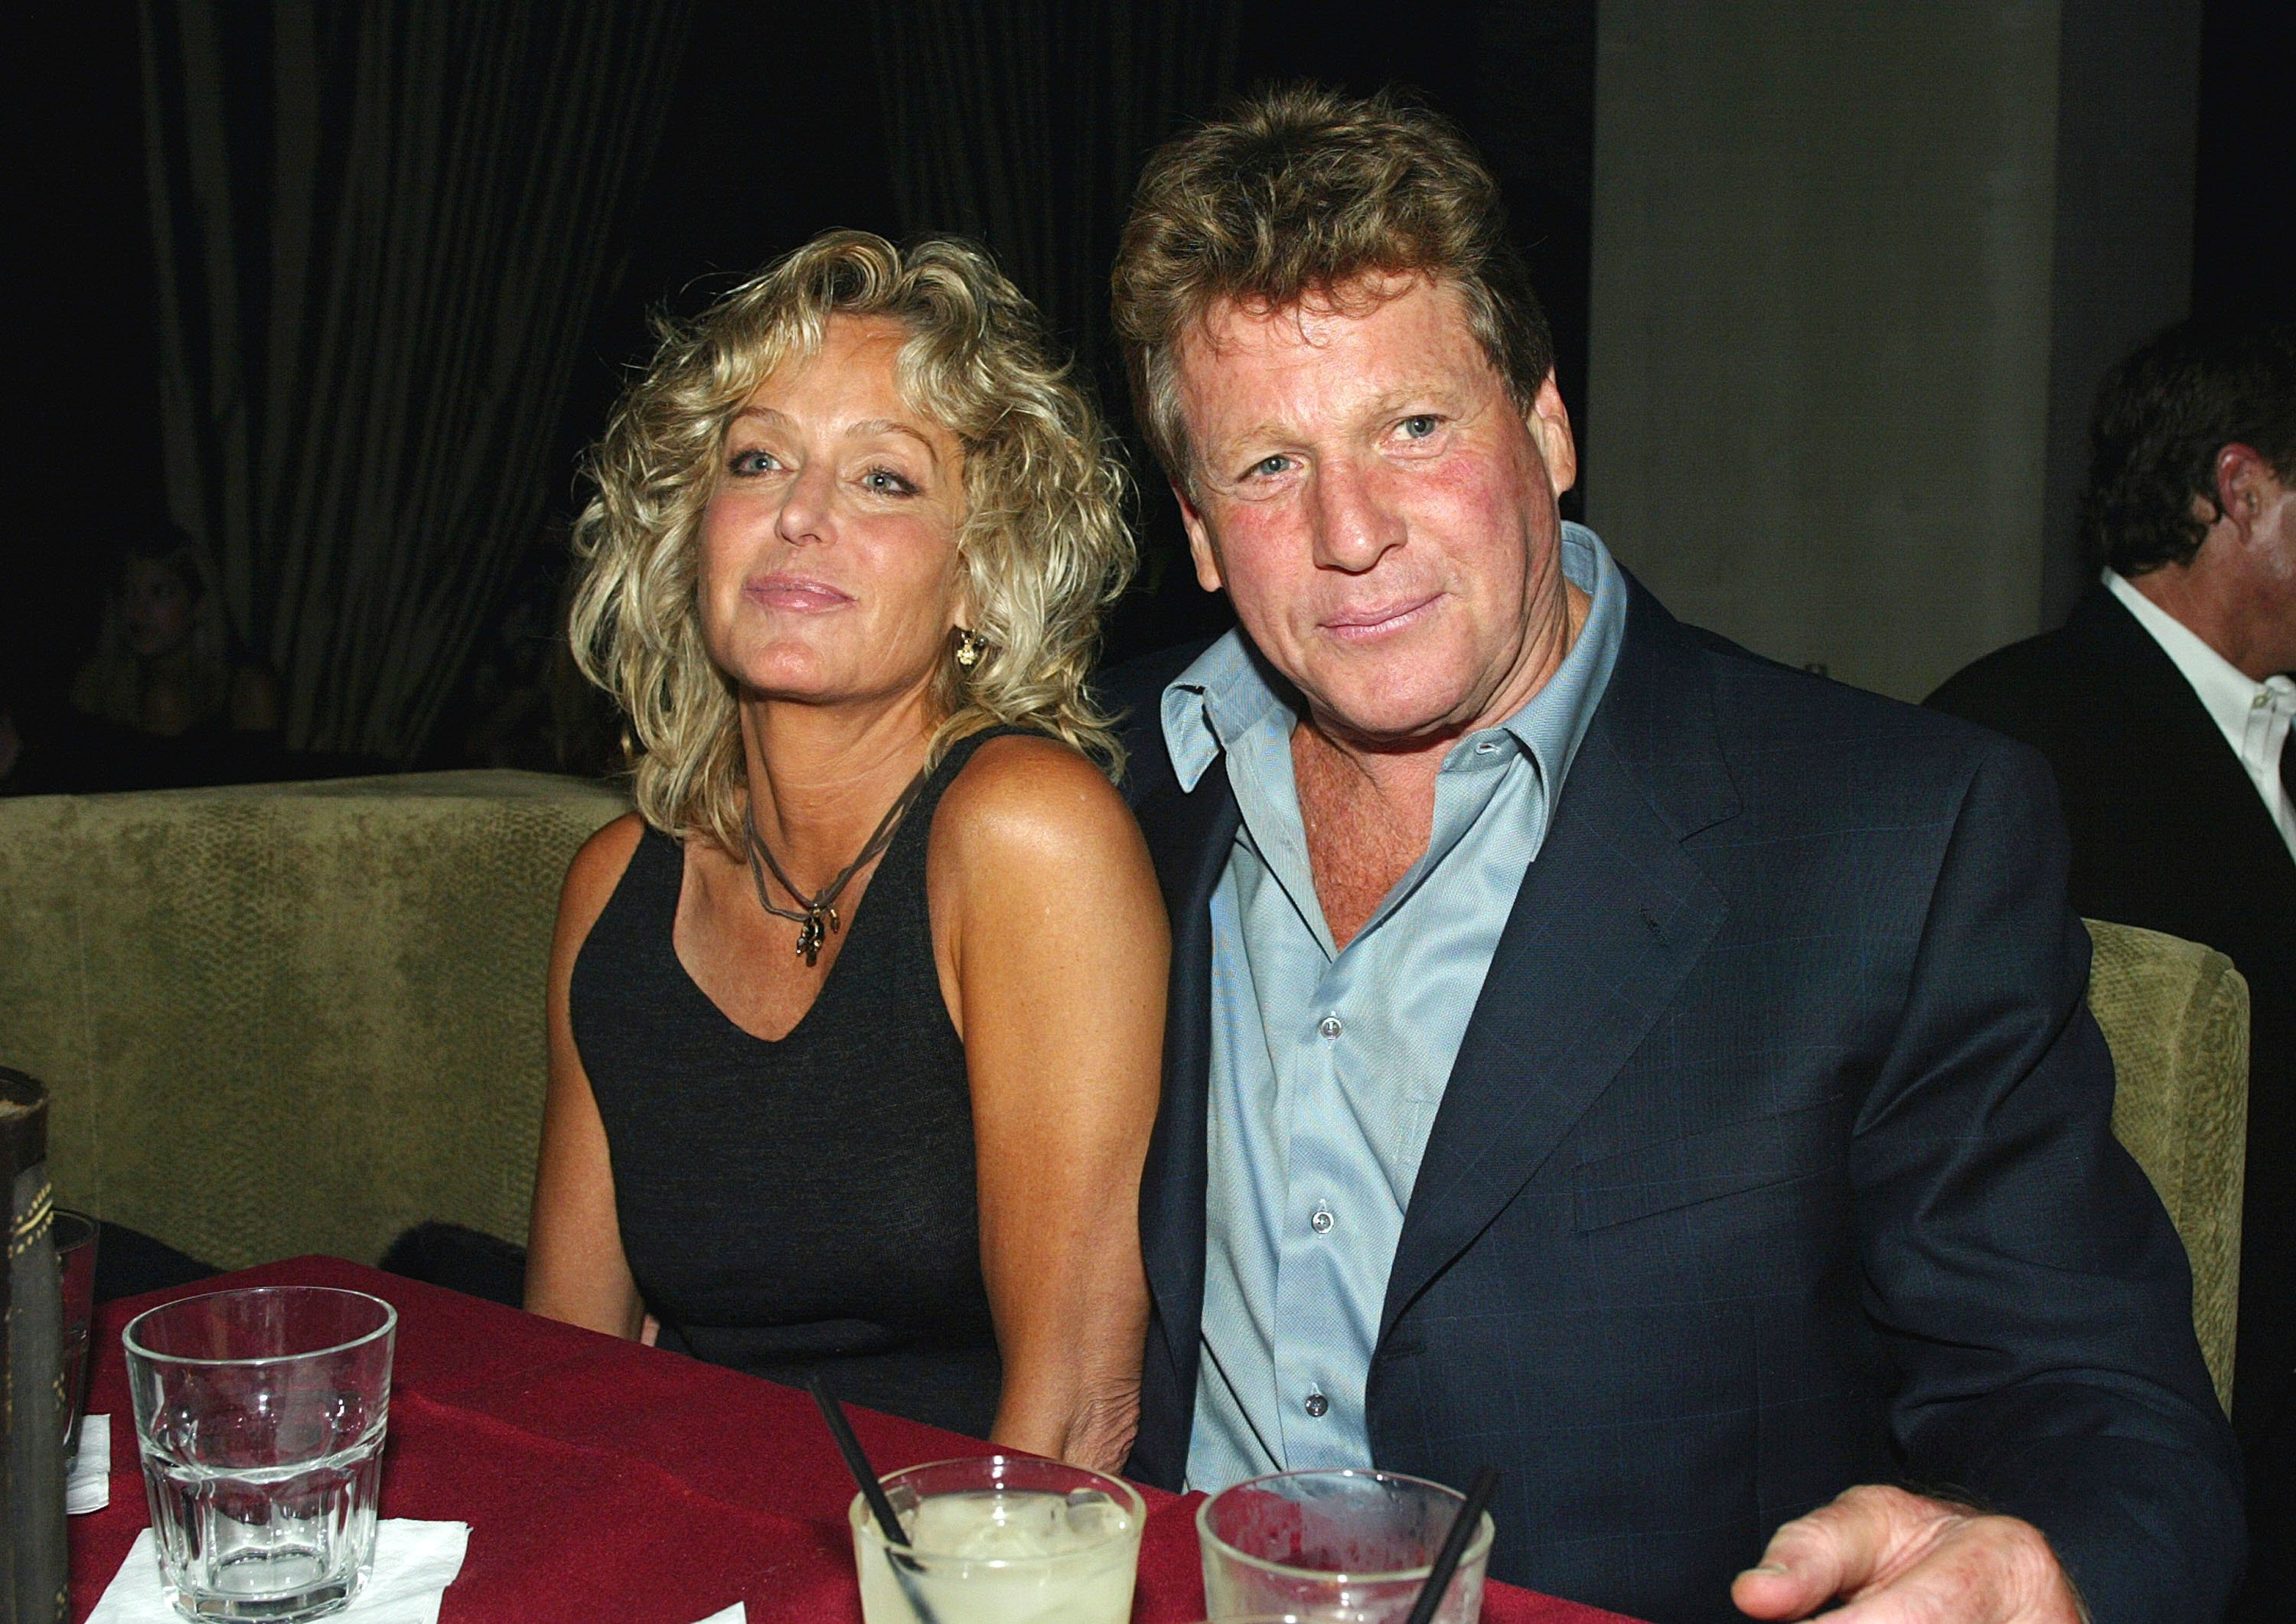 """Farrah Fawcett and Ryan O'Neal at the after-party for """"Malibu's Most Wanted"""" on April 10, 2003 